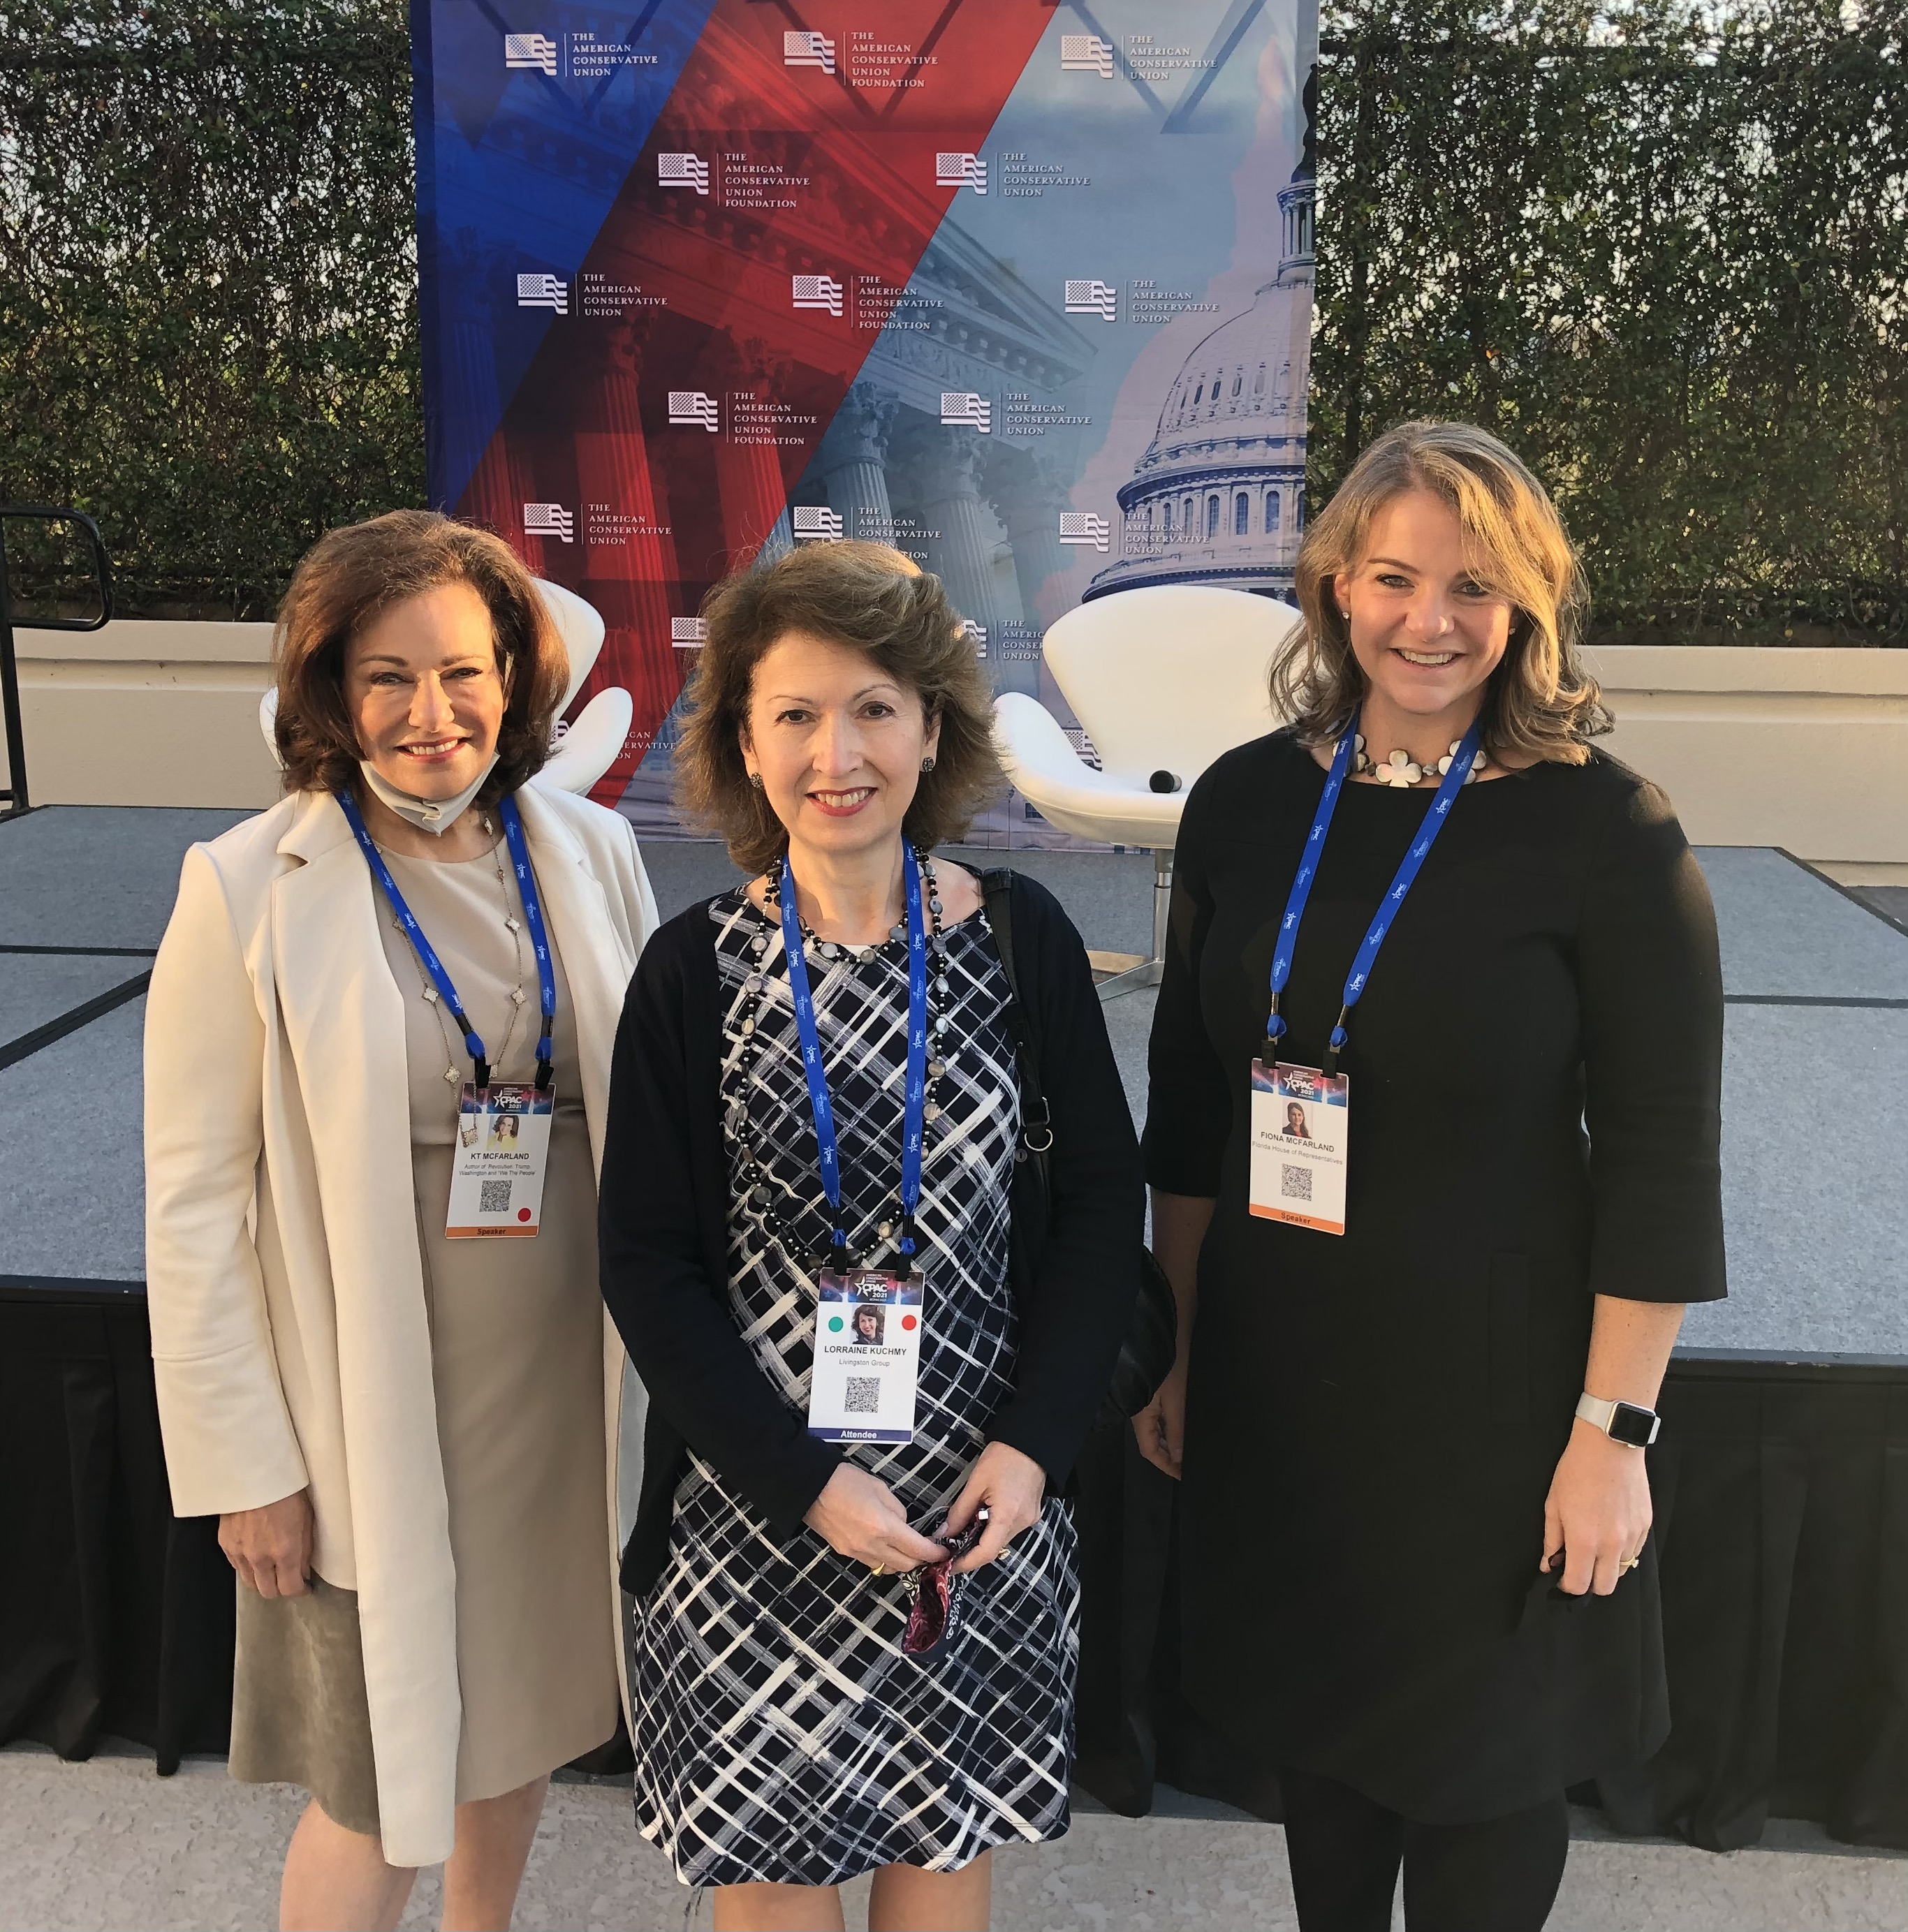 Lorraine Kuchmy, MCGOP Committeewoman with KT McFarland, former Deputy National Security Advisor, and FL State Delegate Fiona McFarland at CPAC in Orlando, Florida.